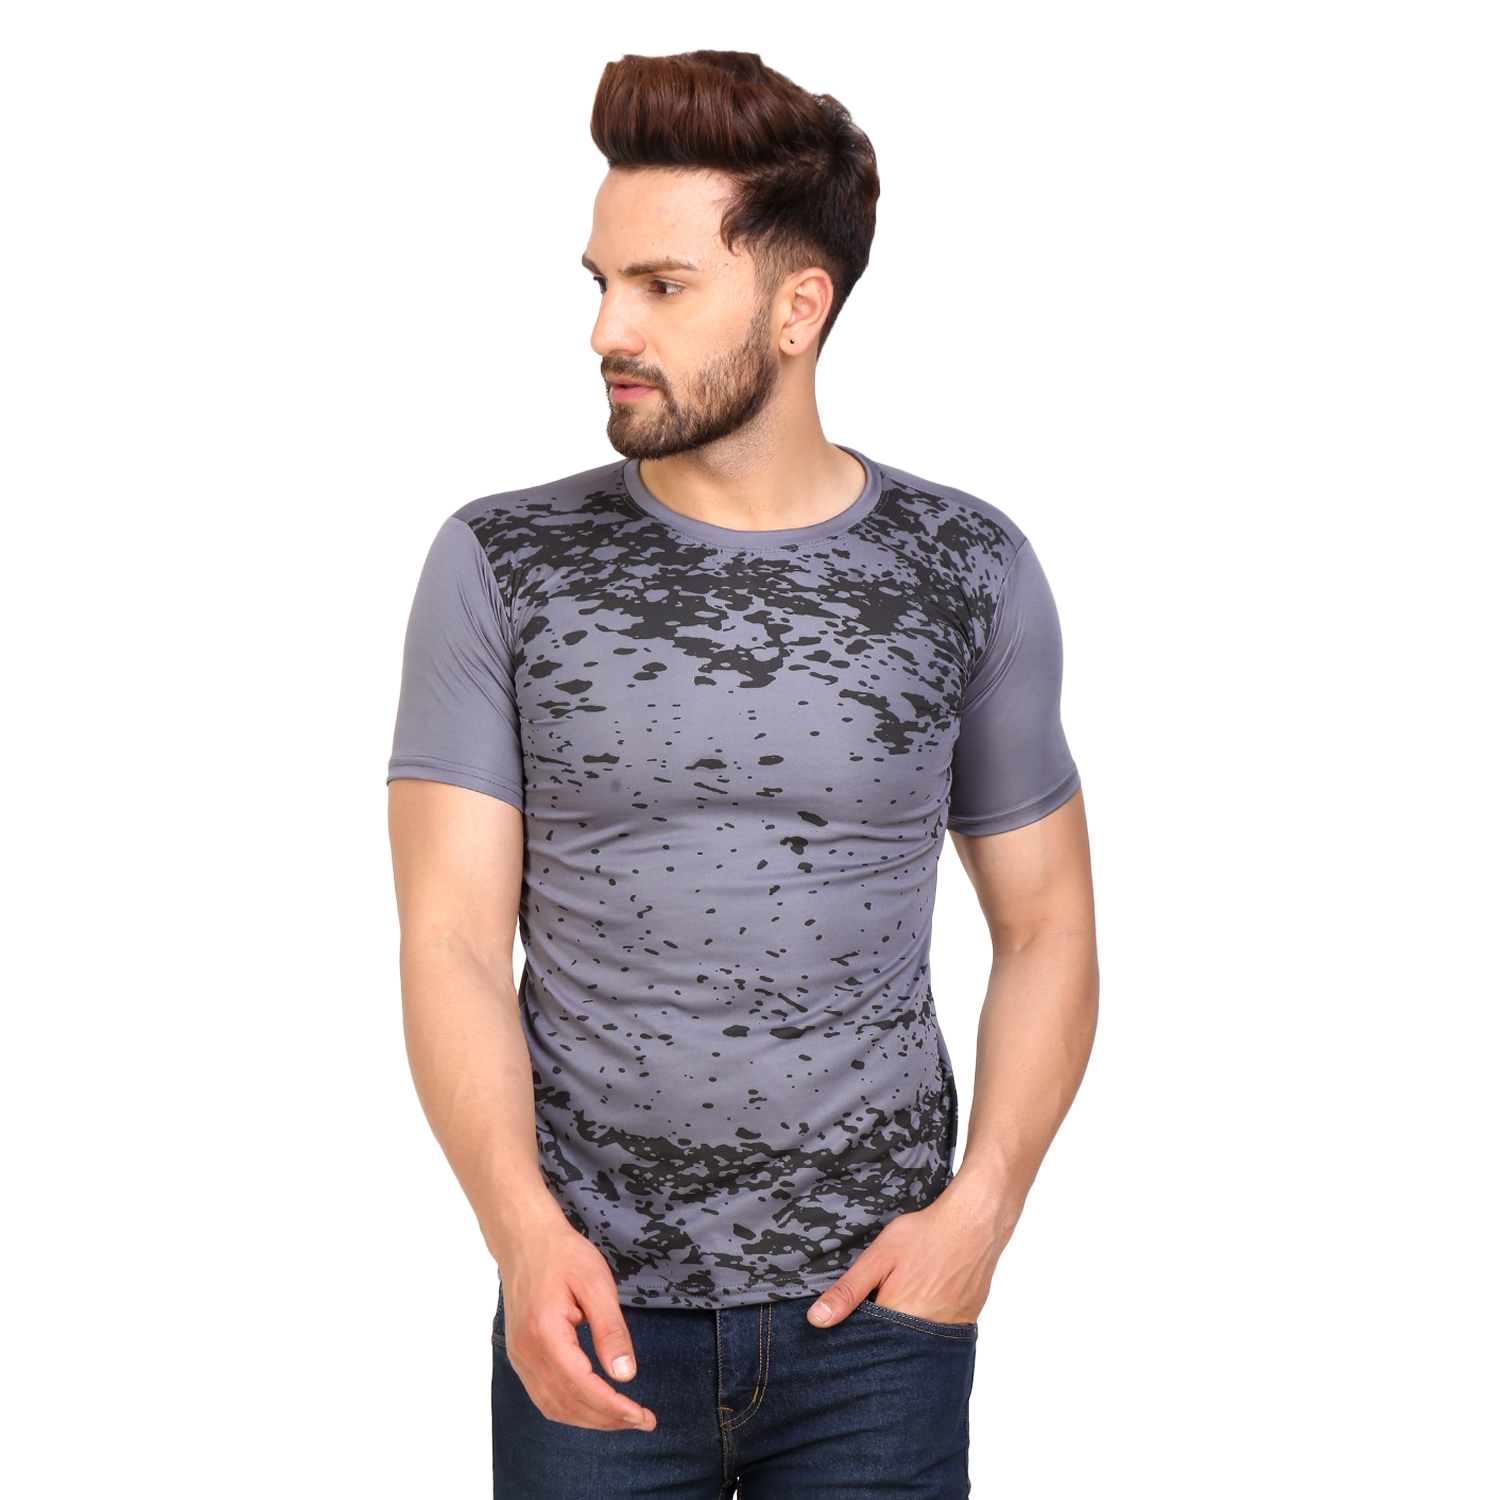 PAUSE Sport Brown Printed Sports Dry-Fit Round Neck Muscle Fit Short Sleeve T-Shirt